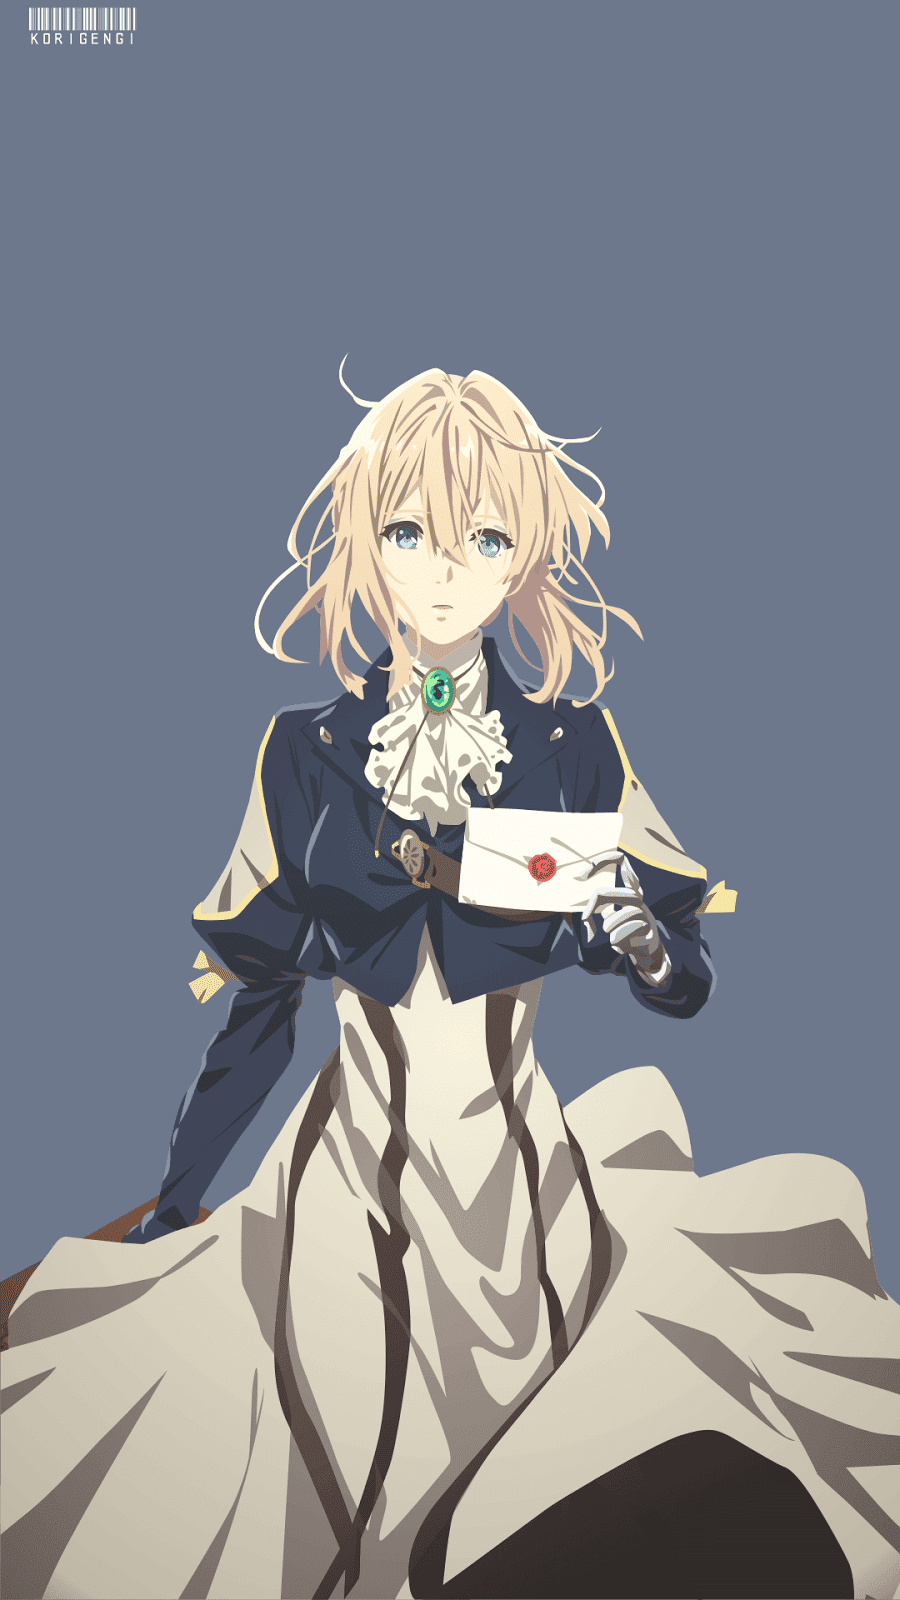 Download 66 Koleksi Wallpaper Hd Anime Violet Evergarden HD Paling Keren